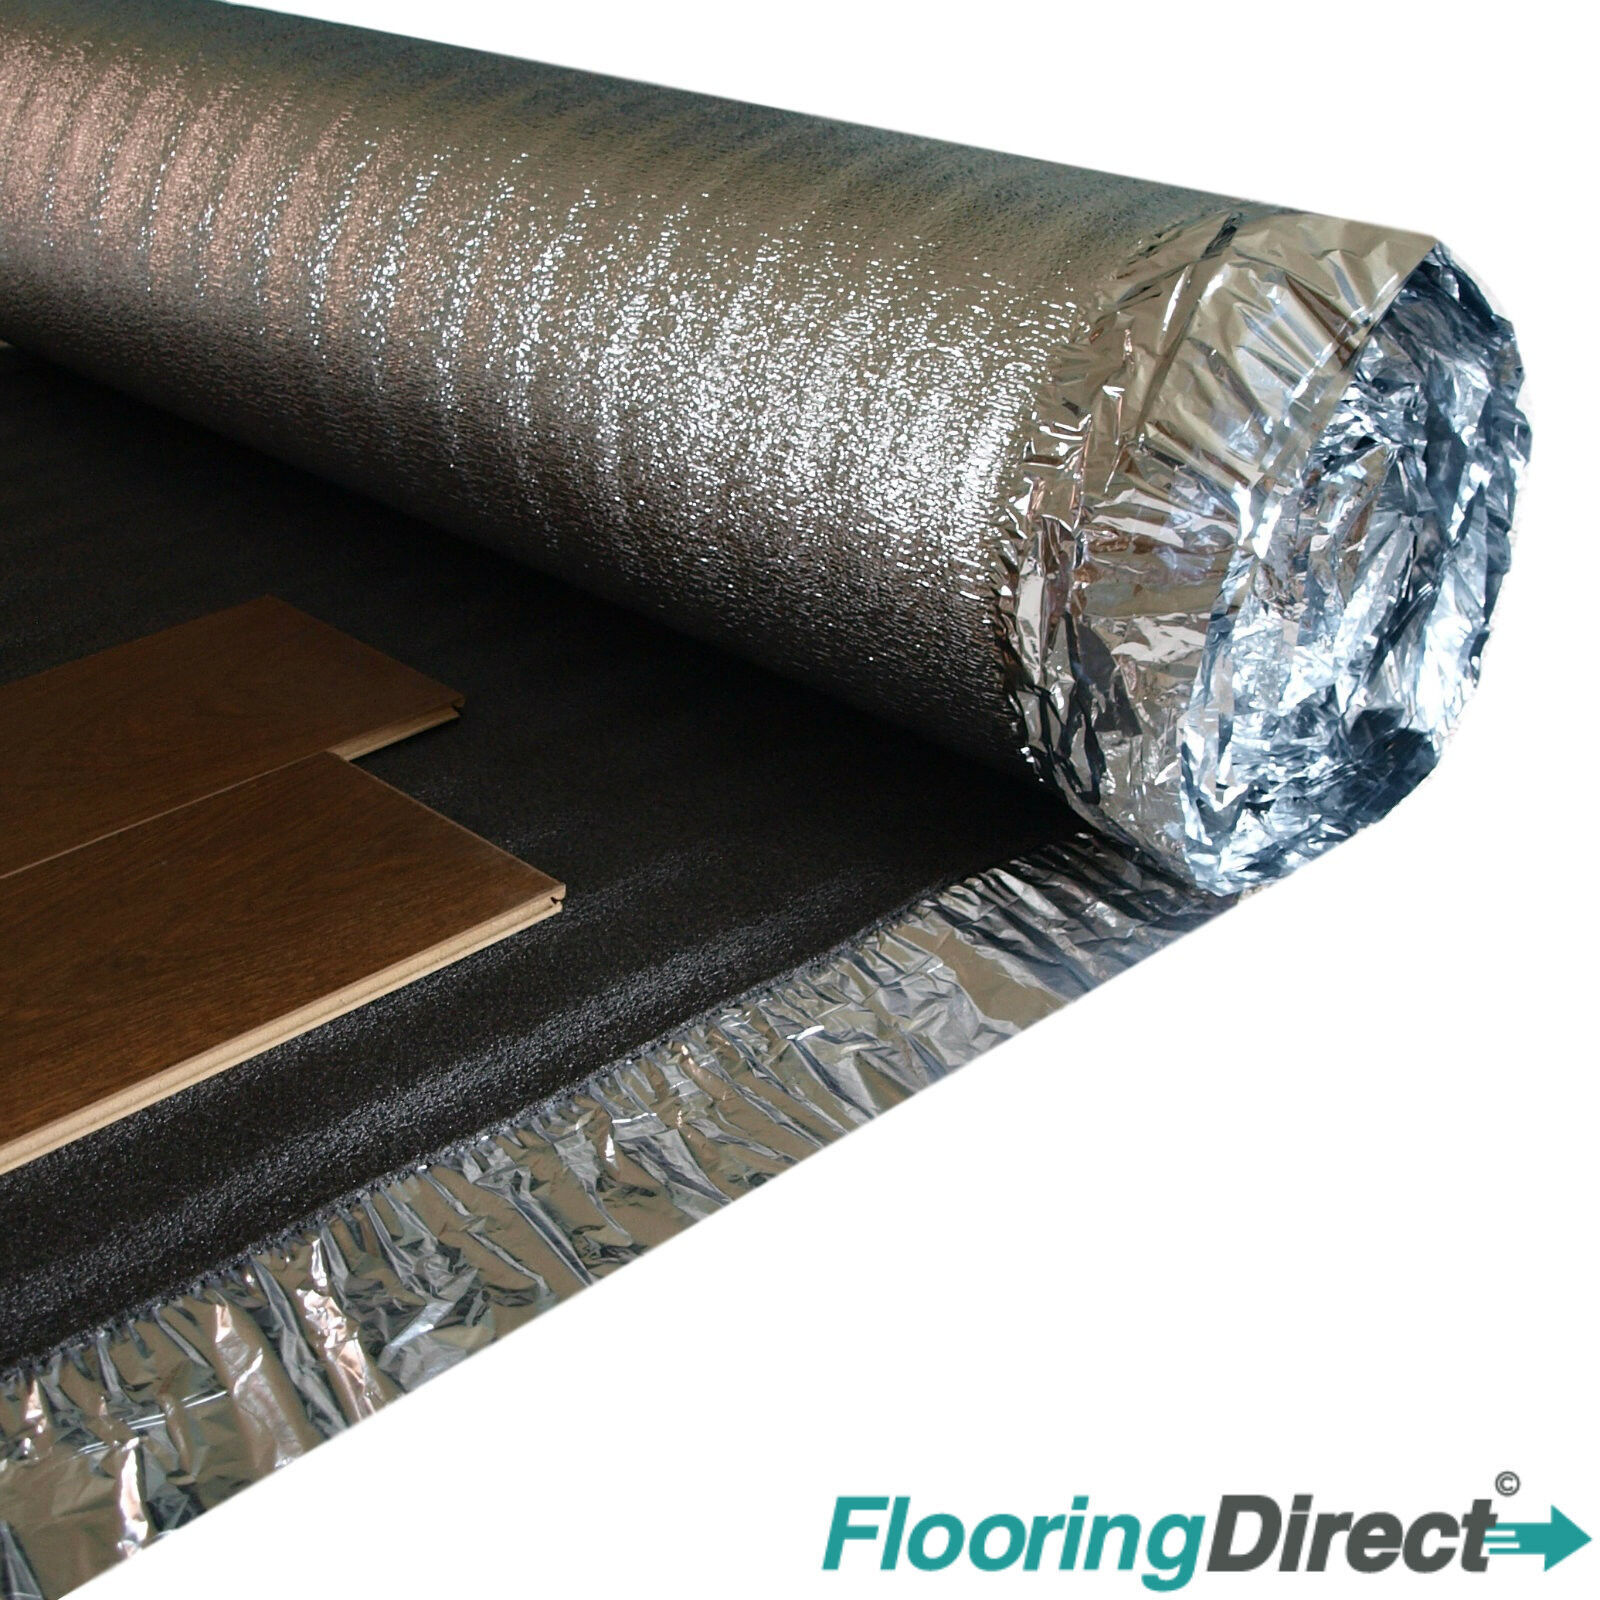 Wood or Laminate Flooring Acoustic /& Heat Insulation 5mm Sonic Silver Underlay